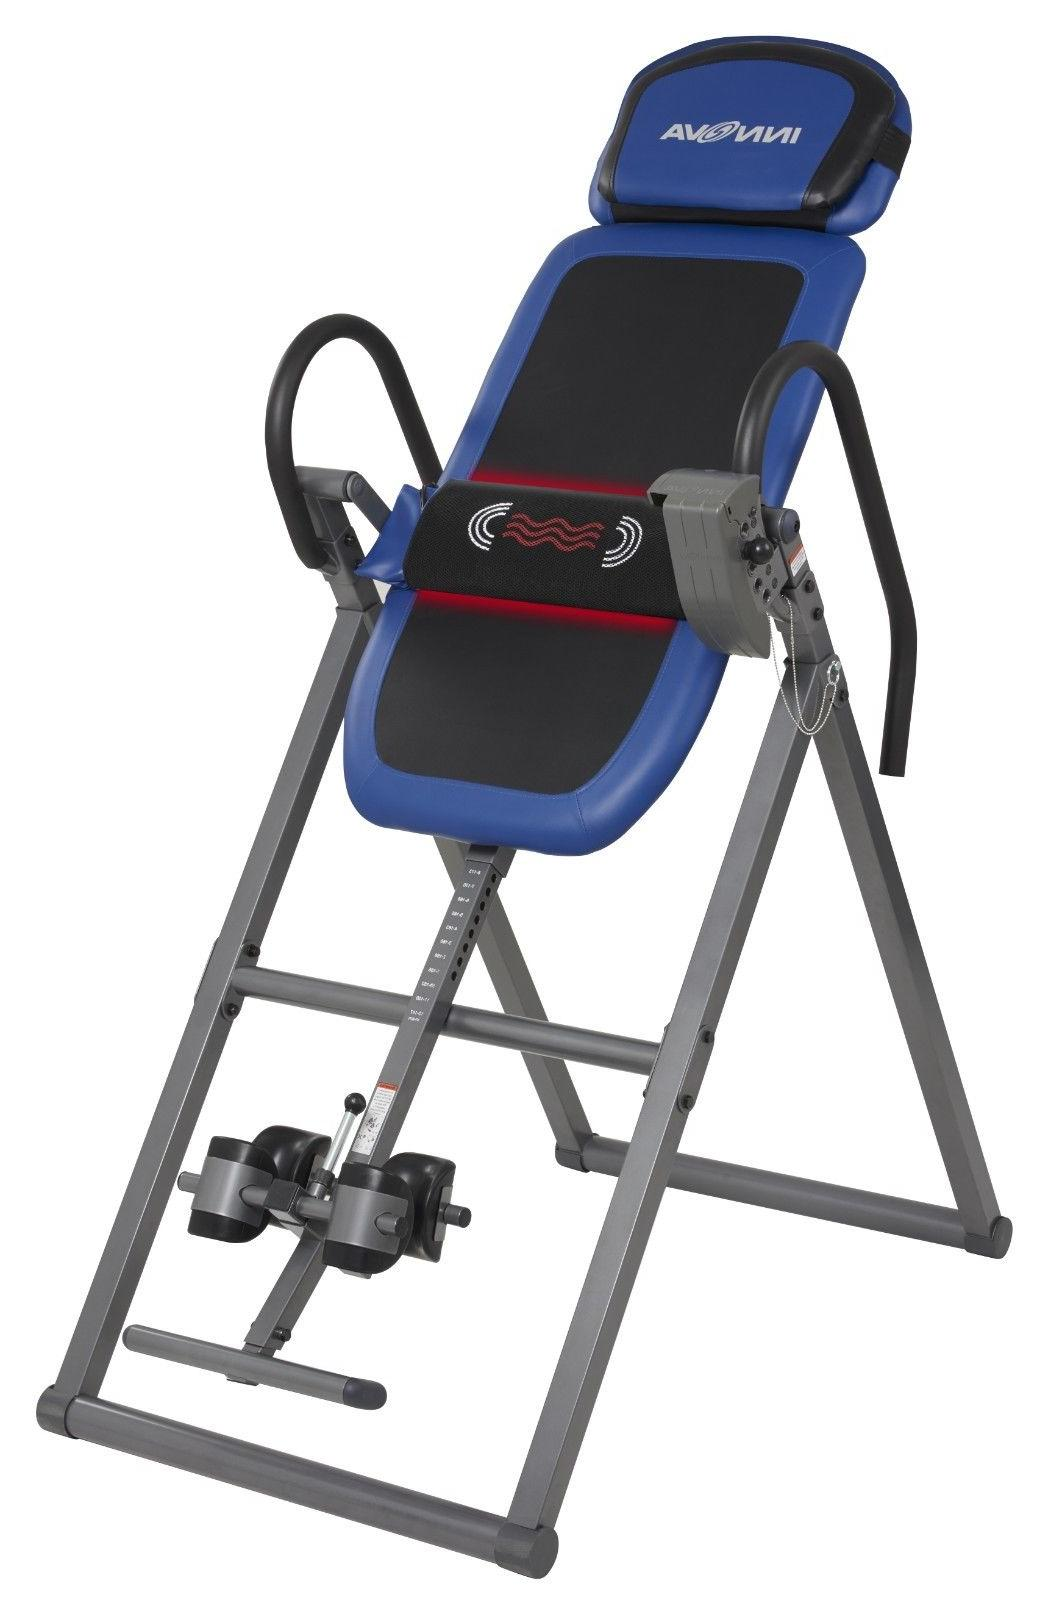 itm4800 advanced heat and massage therapeutic inversion